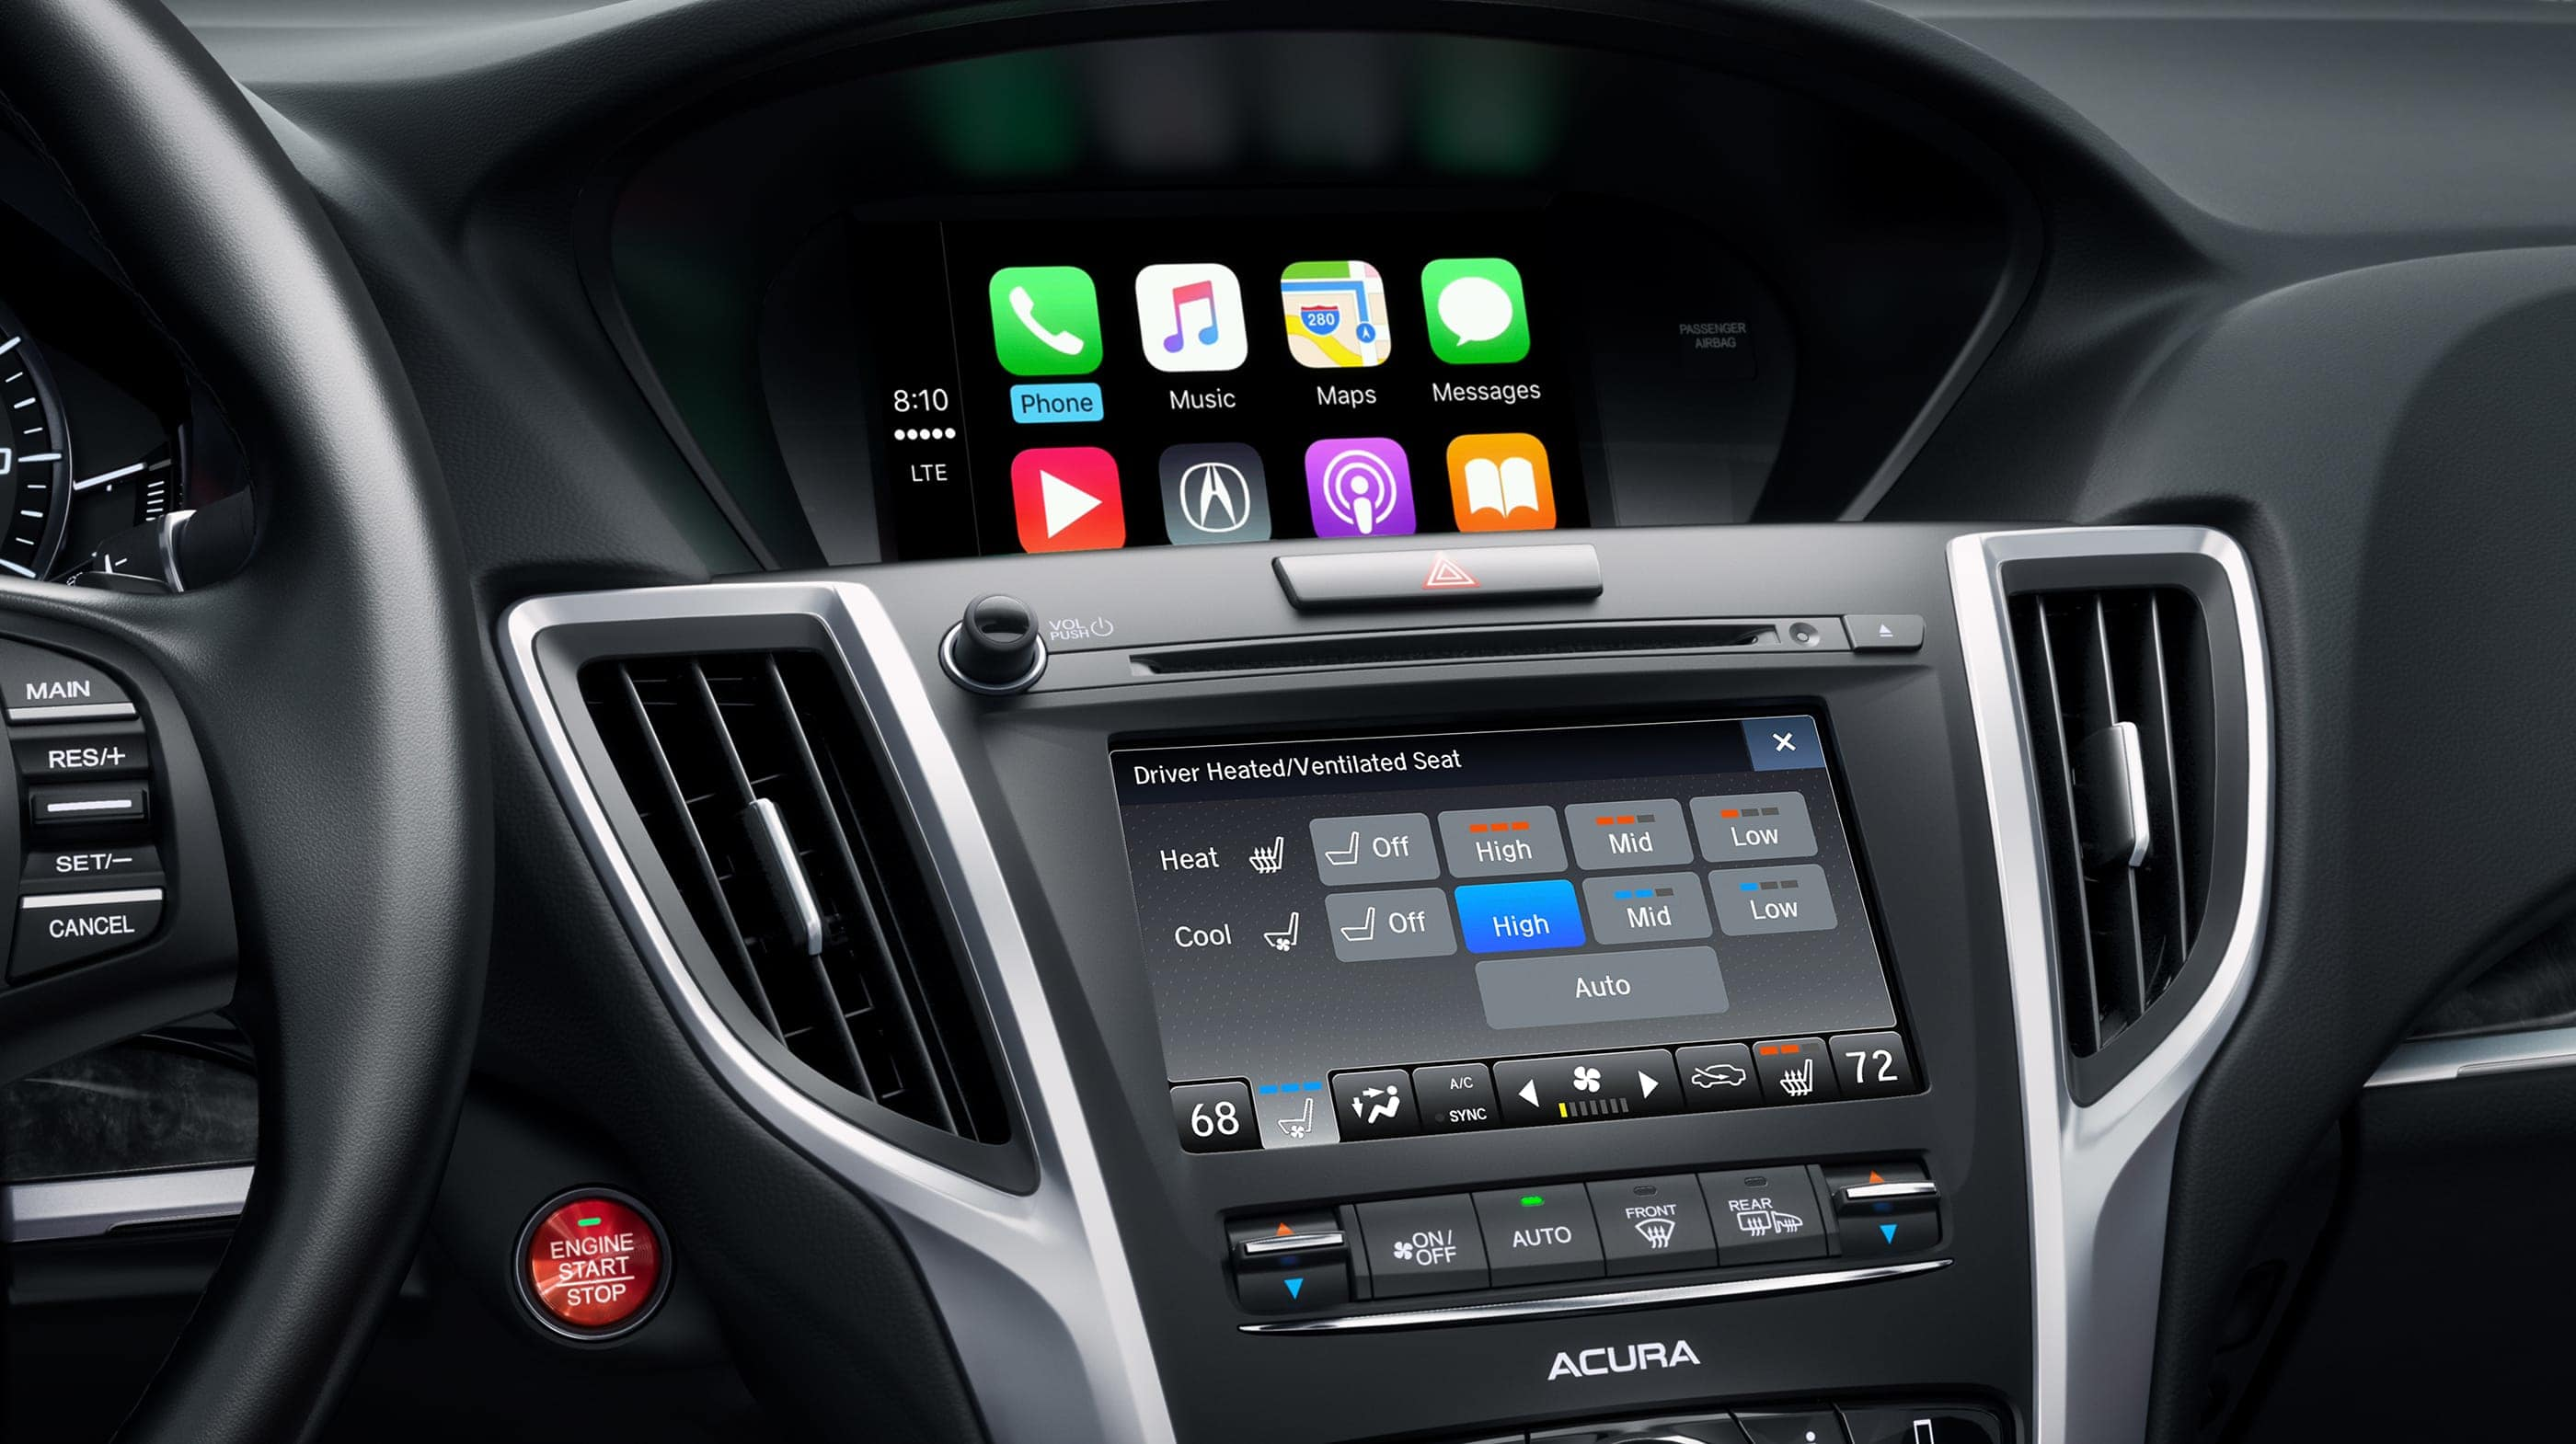 Touchscreen in the 2020 TLX